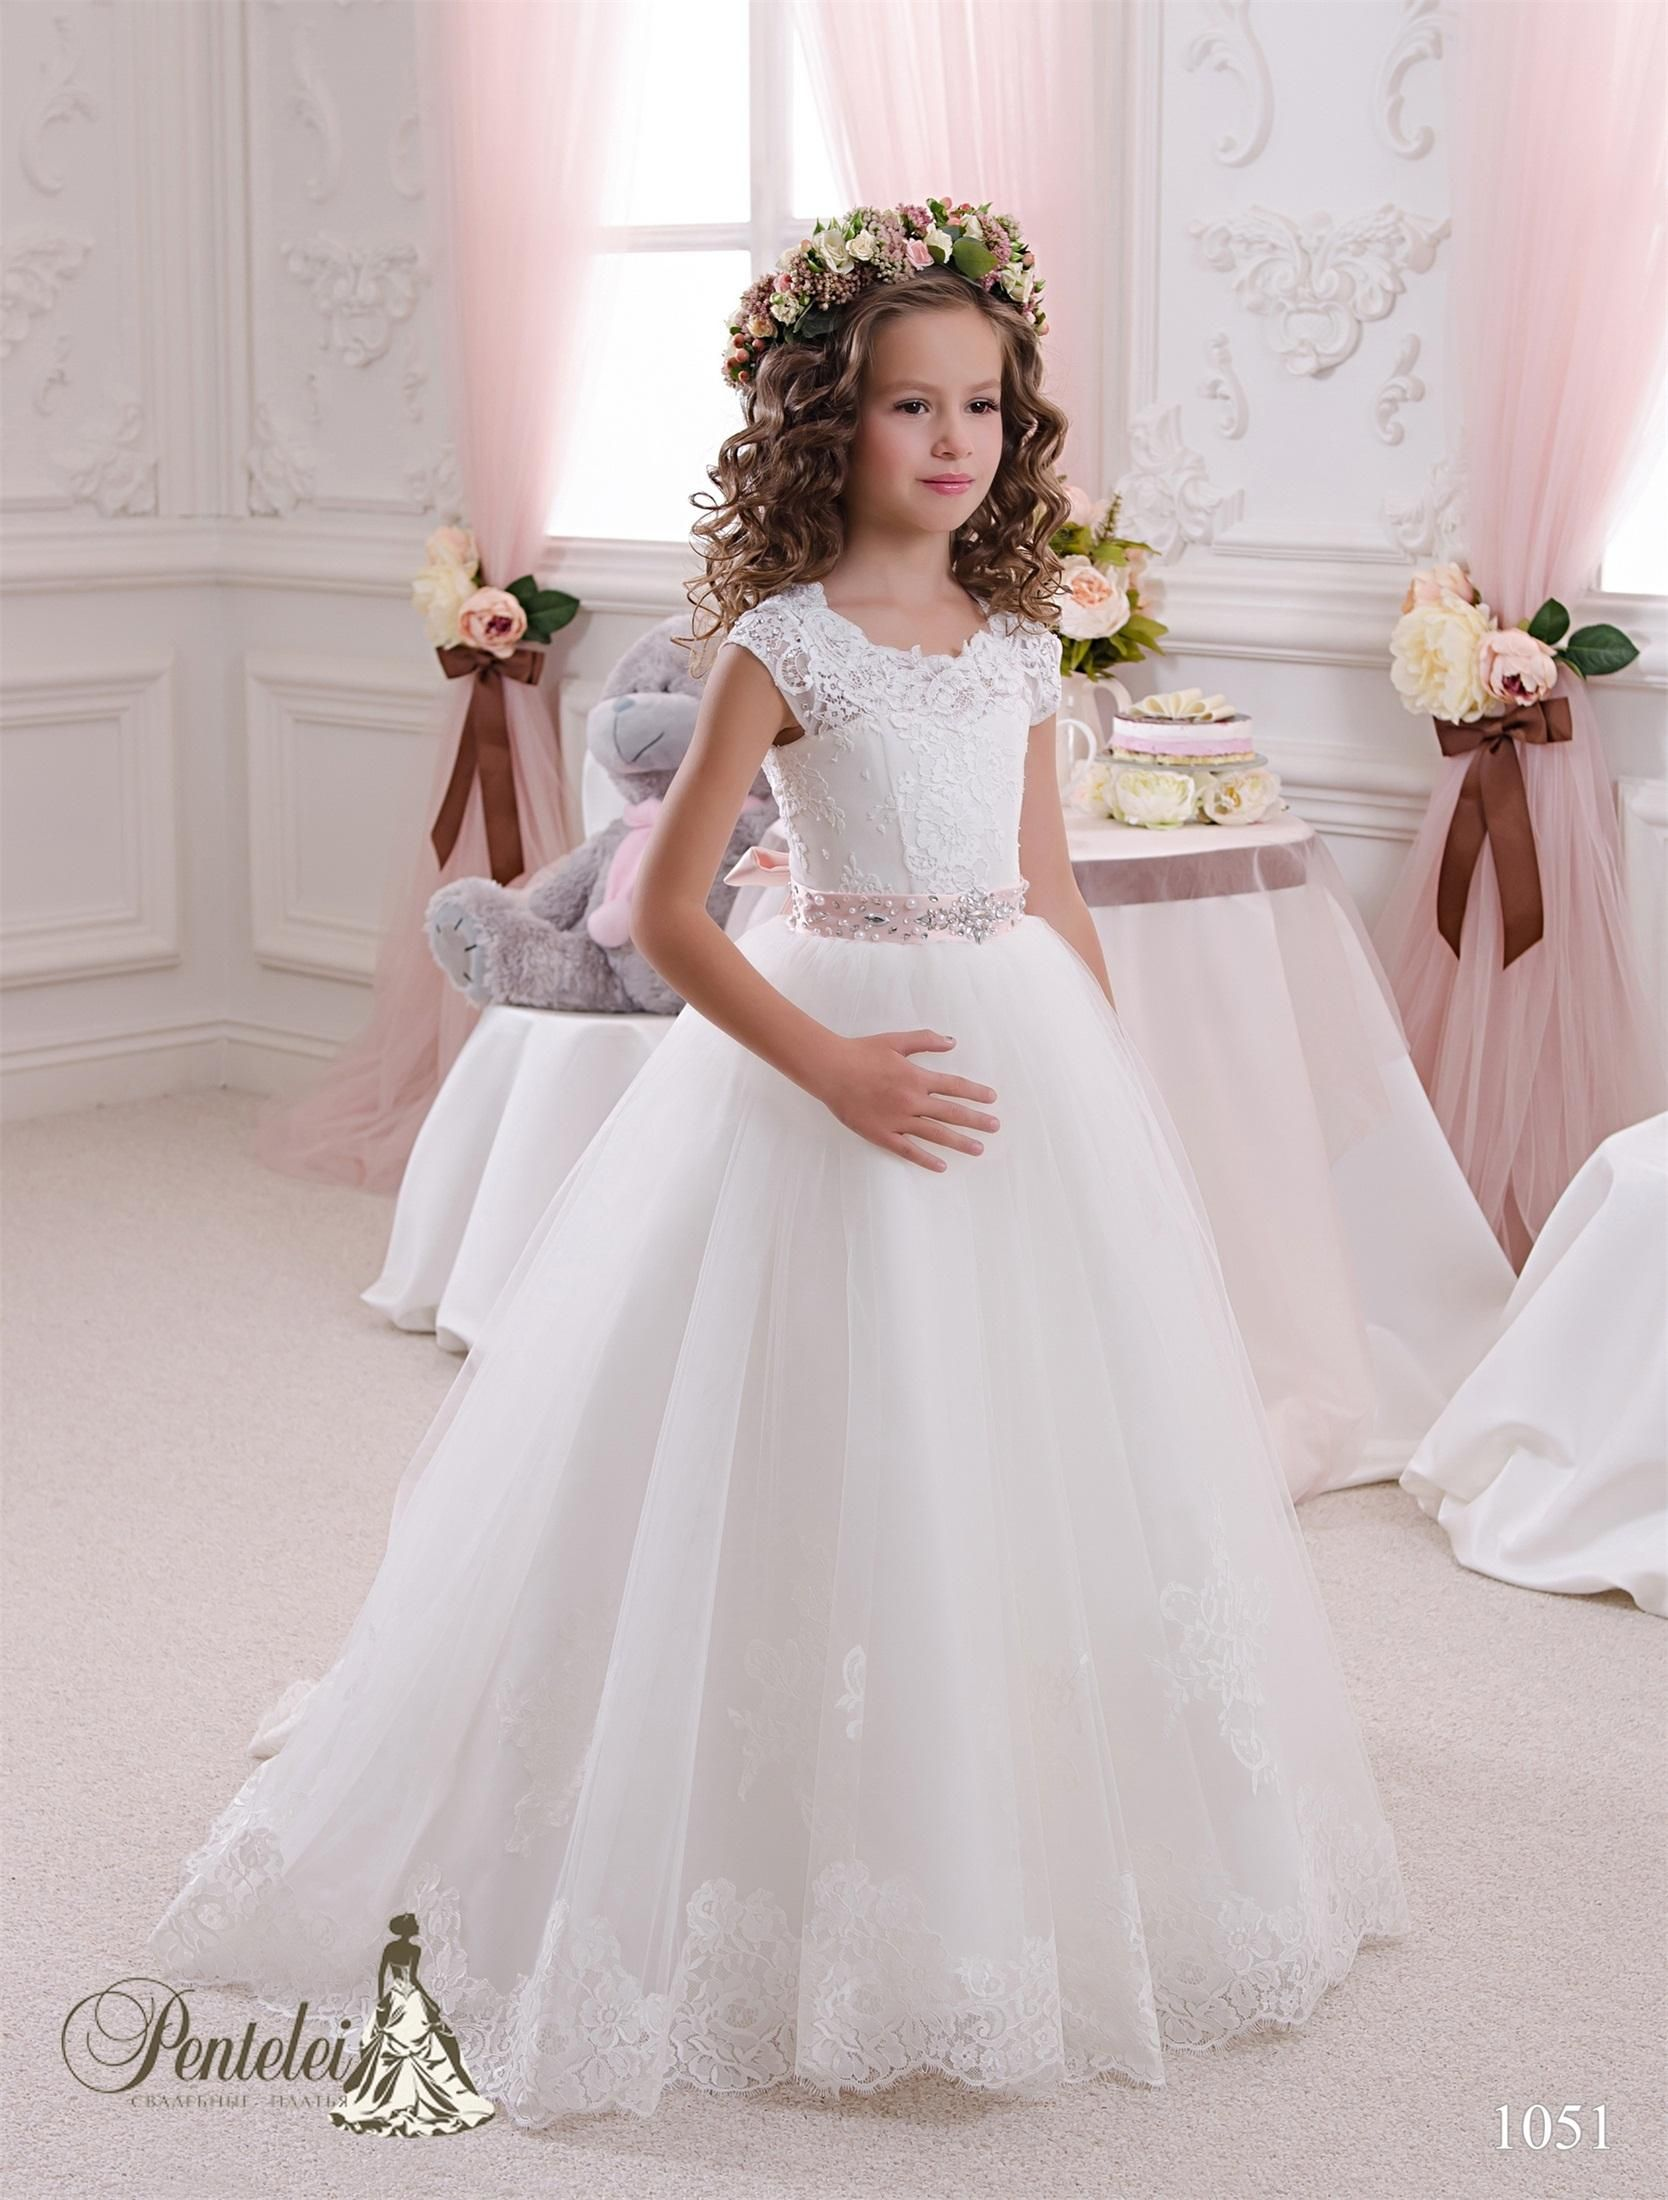 2016 kids wedding dresses with cap sleeves jewel neck for Little flower girl wedding dresses